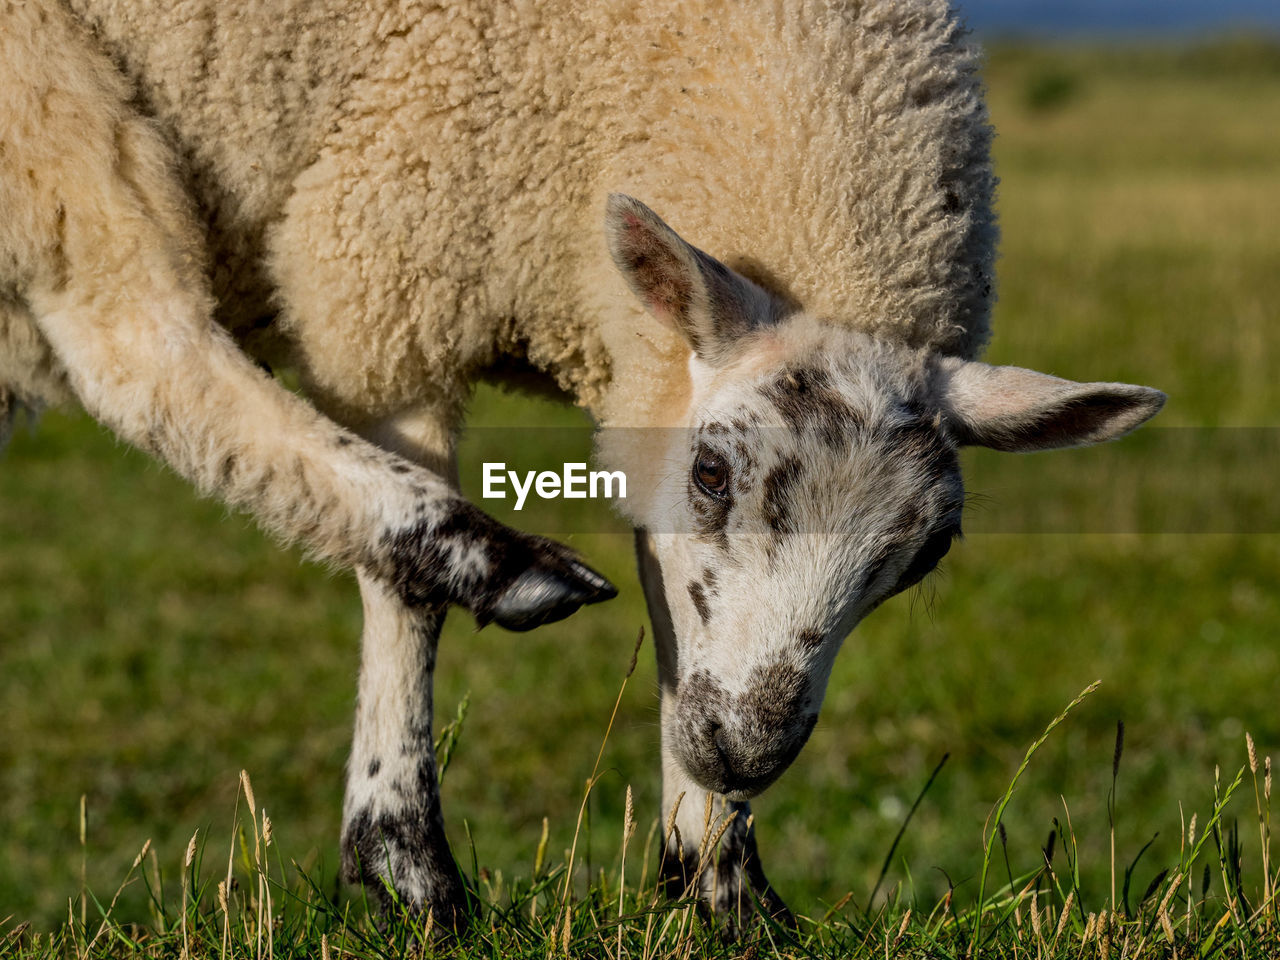 mammal, animal, animal themes, grass, one animal, field, domestic animals, land, plant, livestock, no people, grazing, nature, vertebrate, focus on foreground, domestic, day, animal body part, agriculture, animal wildlife, herbivorous, outdoors, animal head